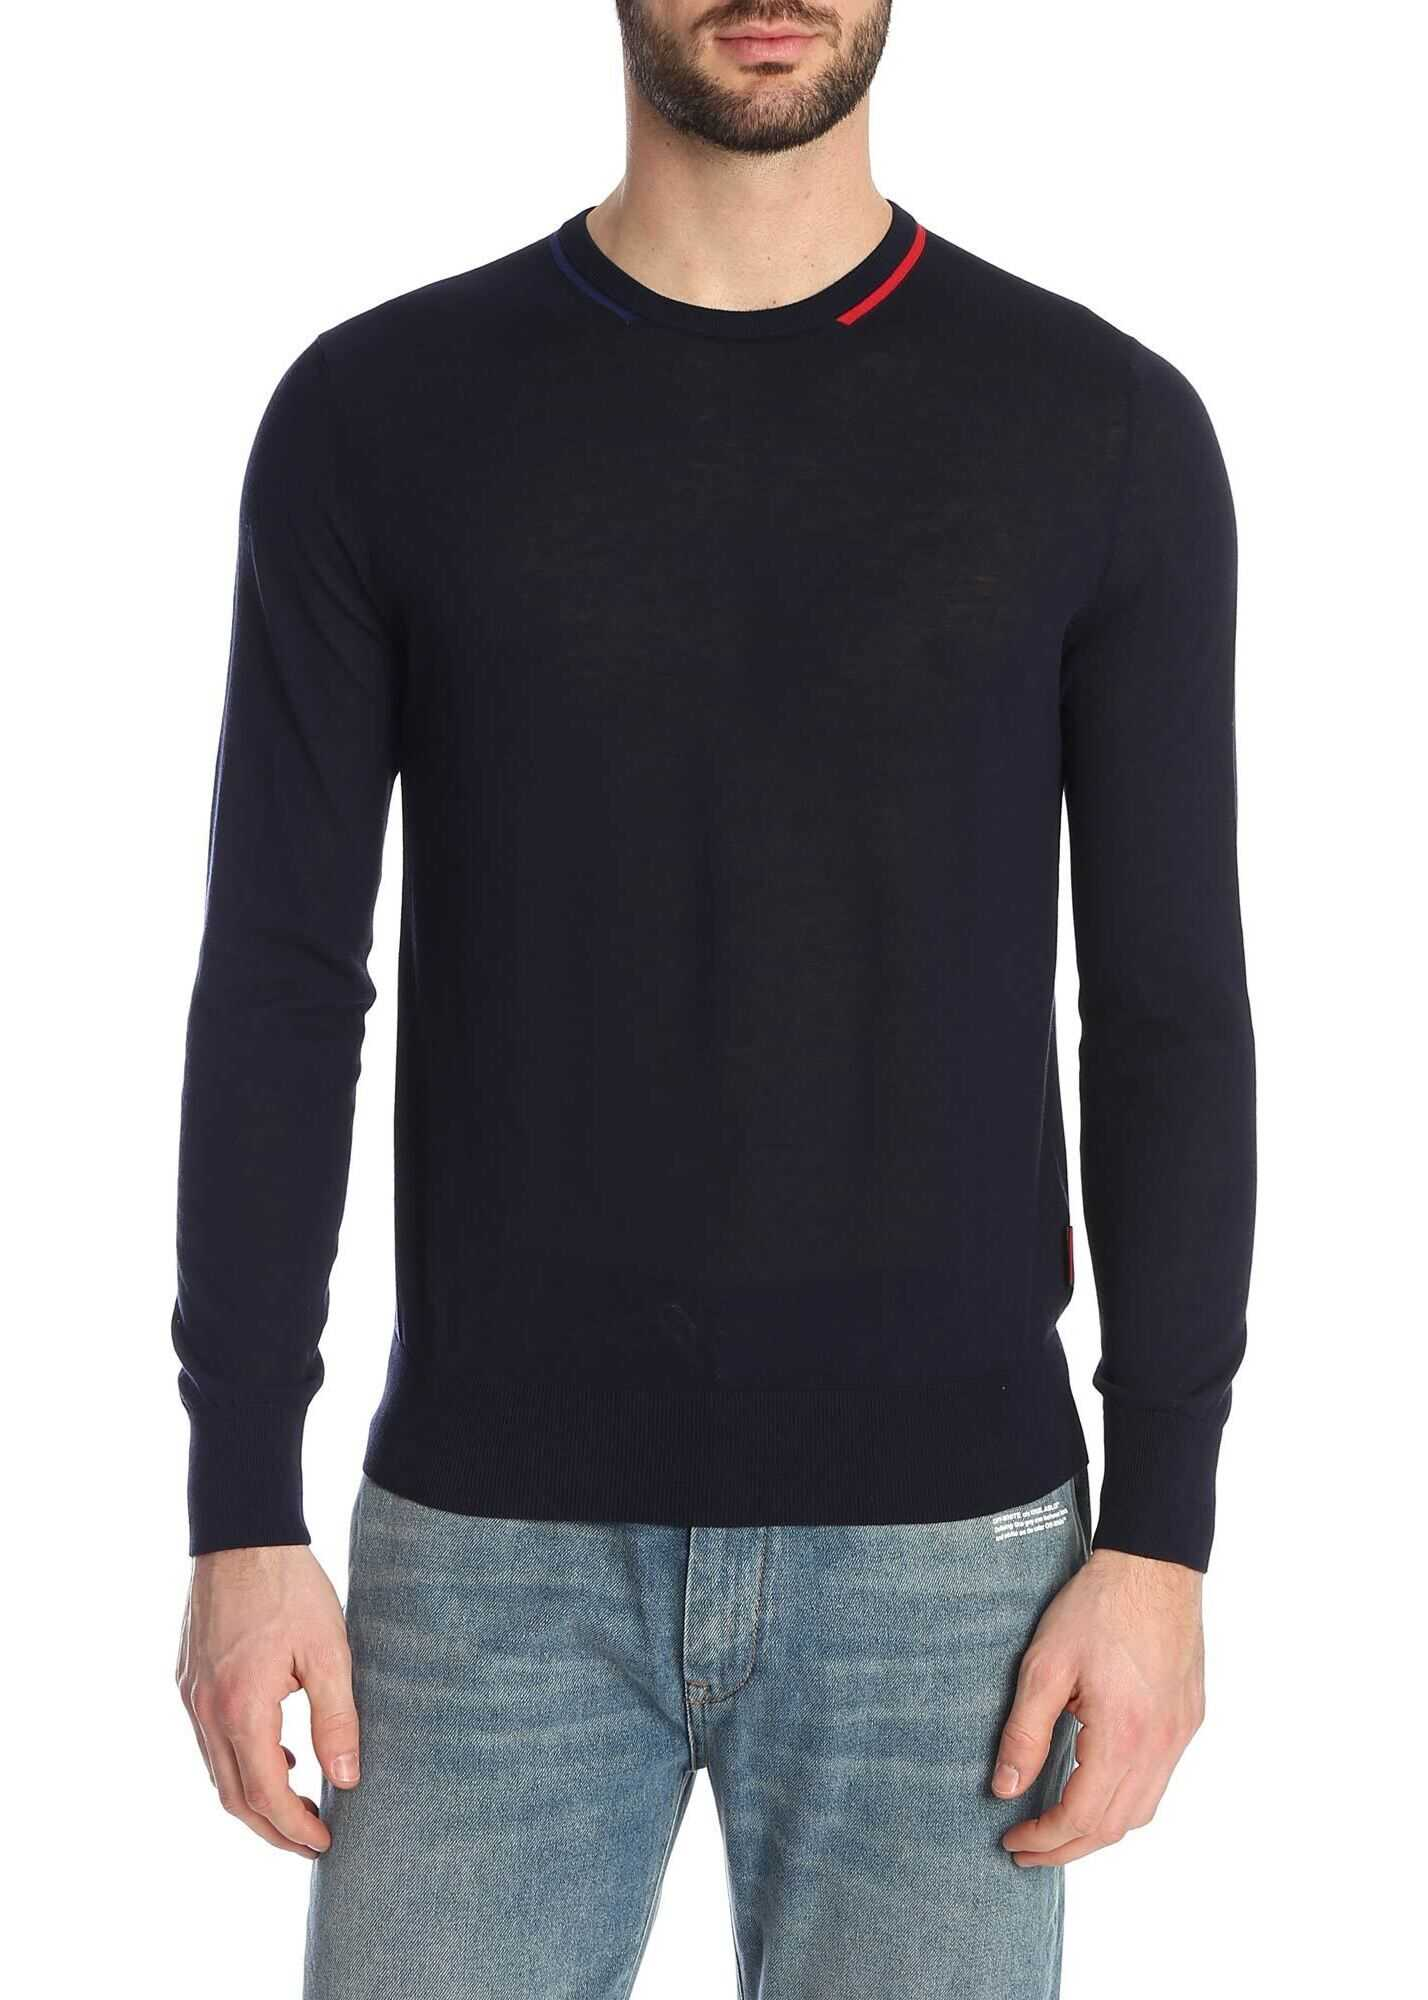 Moncler Sweater In Dark Blue With Inlay On The Neck Blue imagine